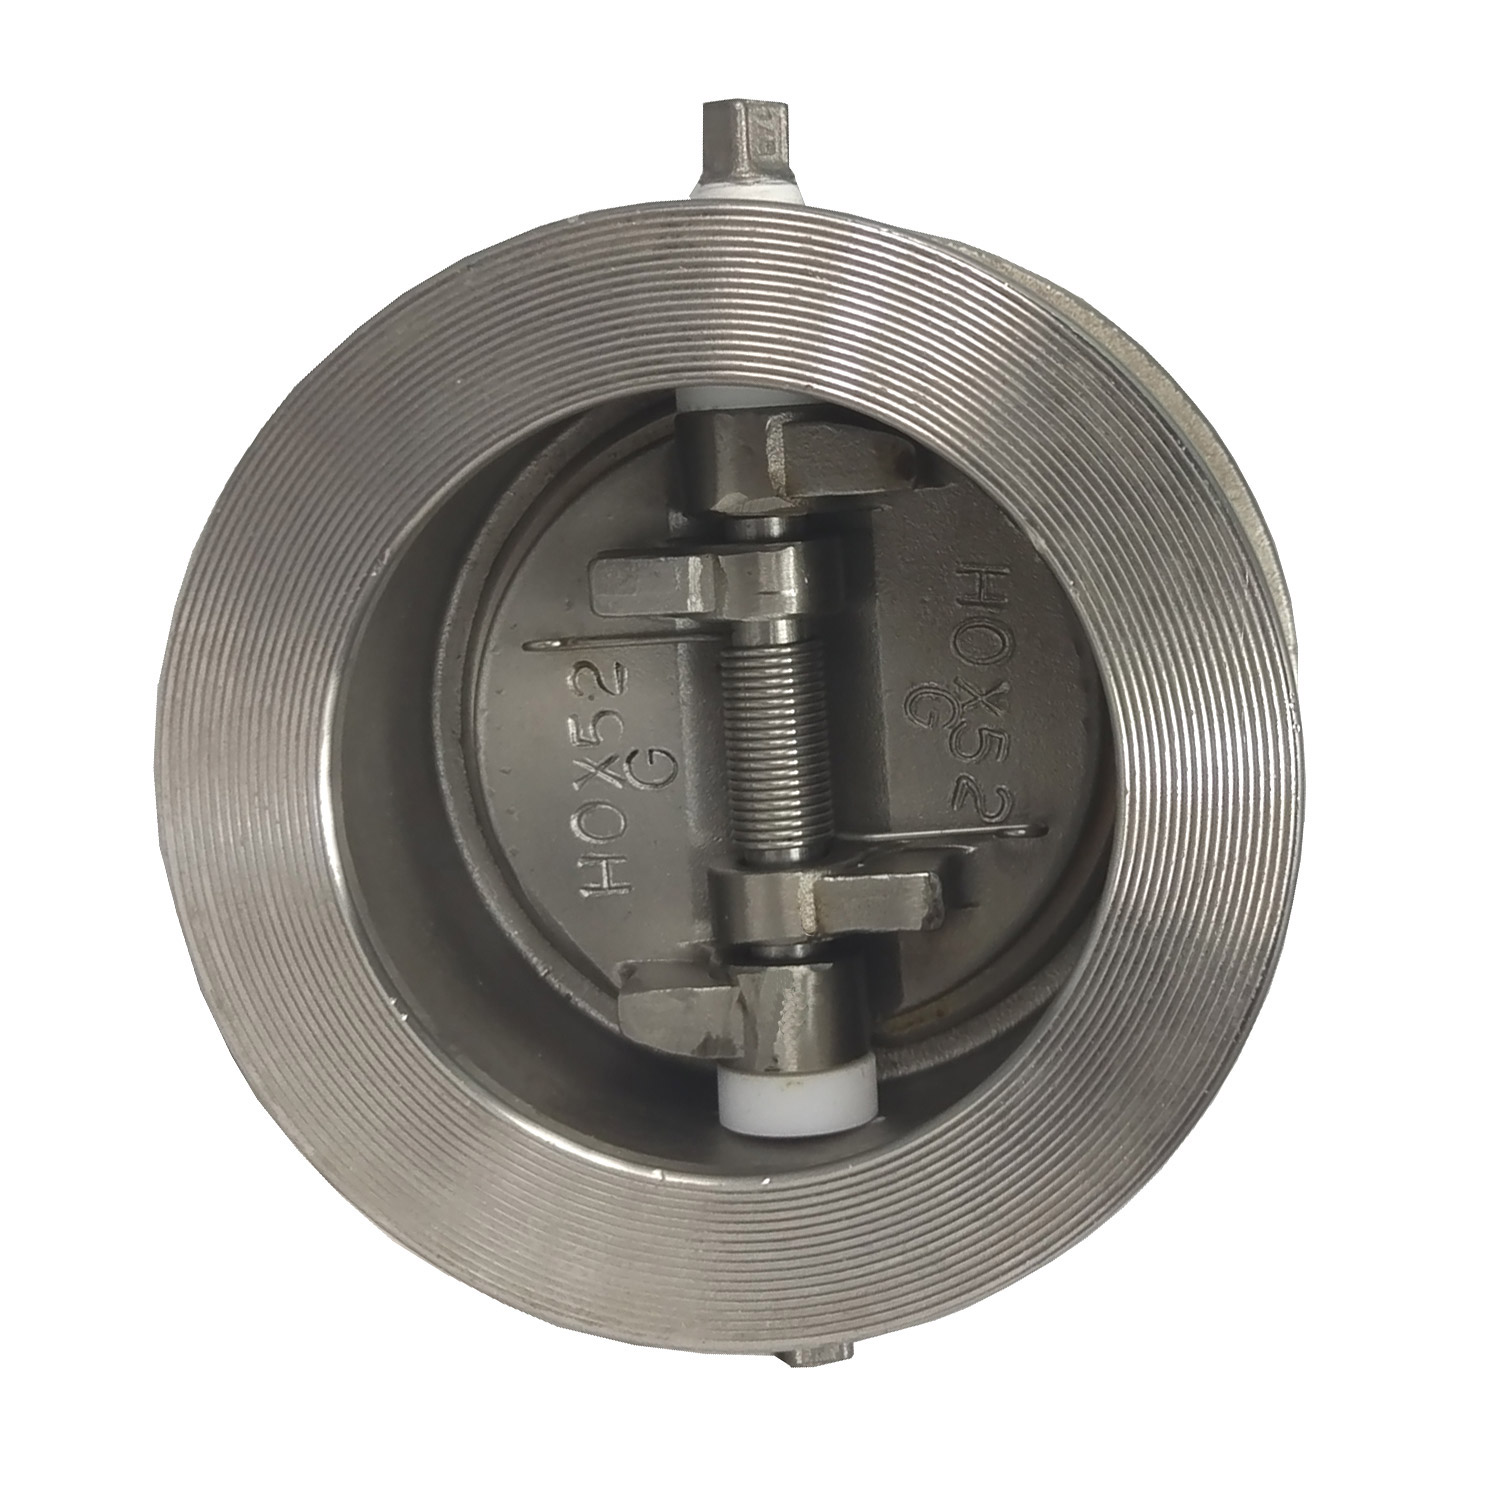 DUAL DOOR SPRING WATER CHECK VALVE